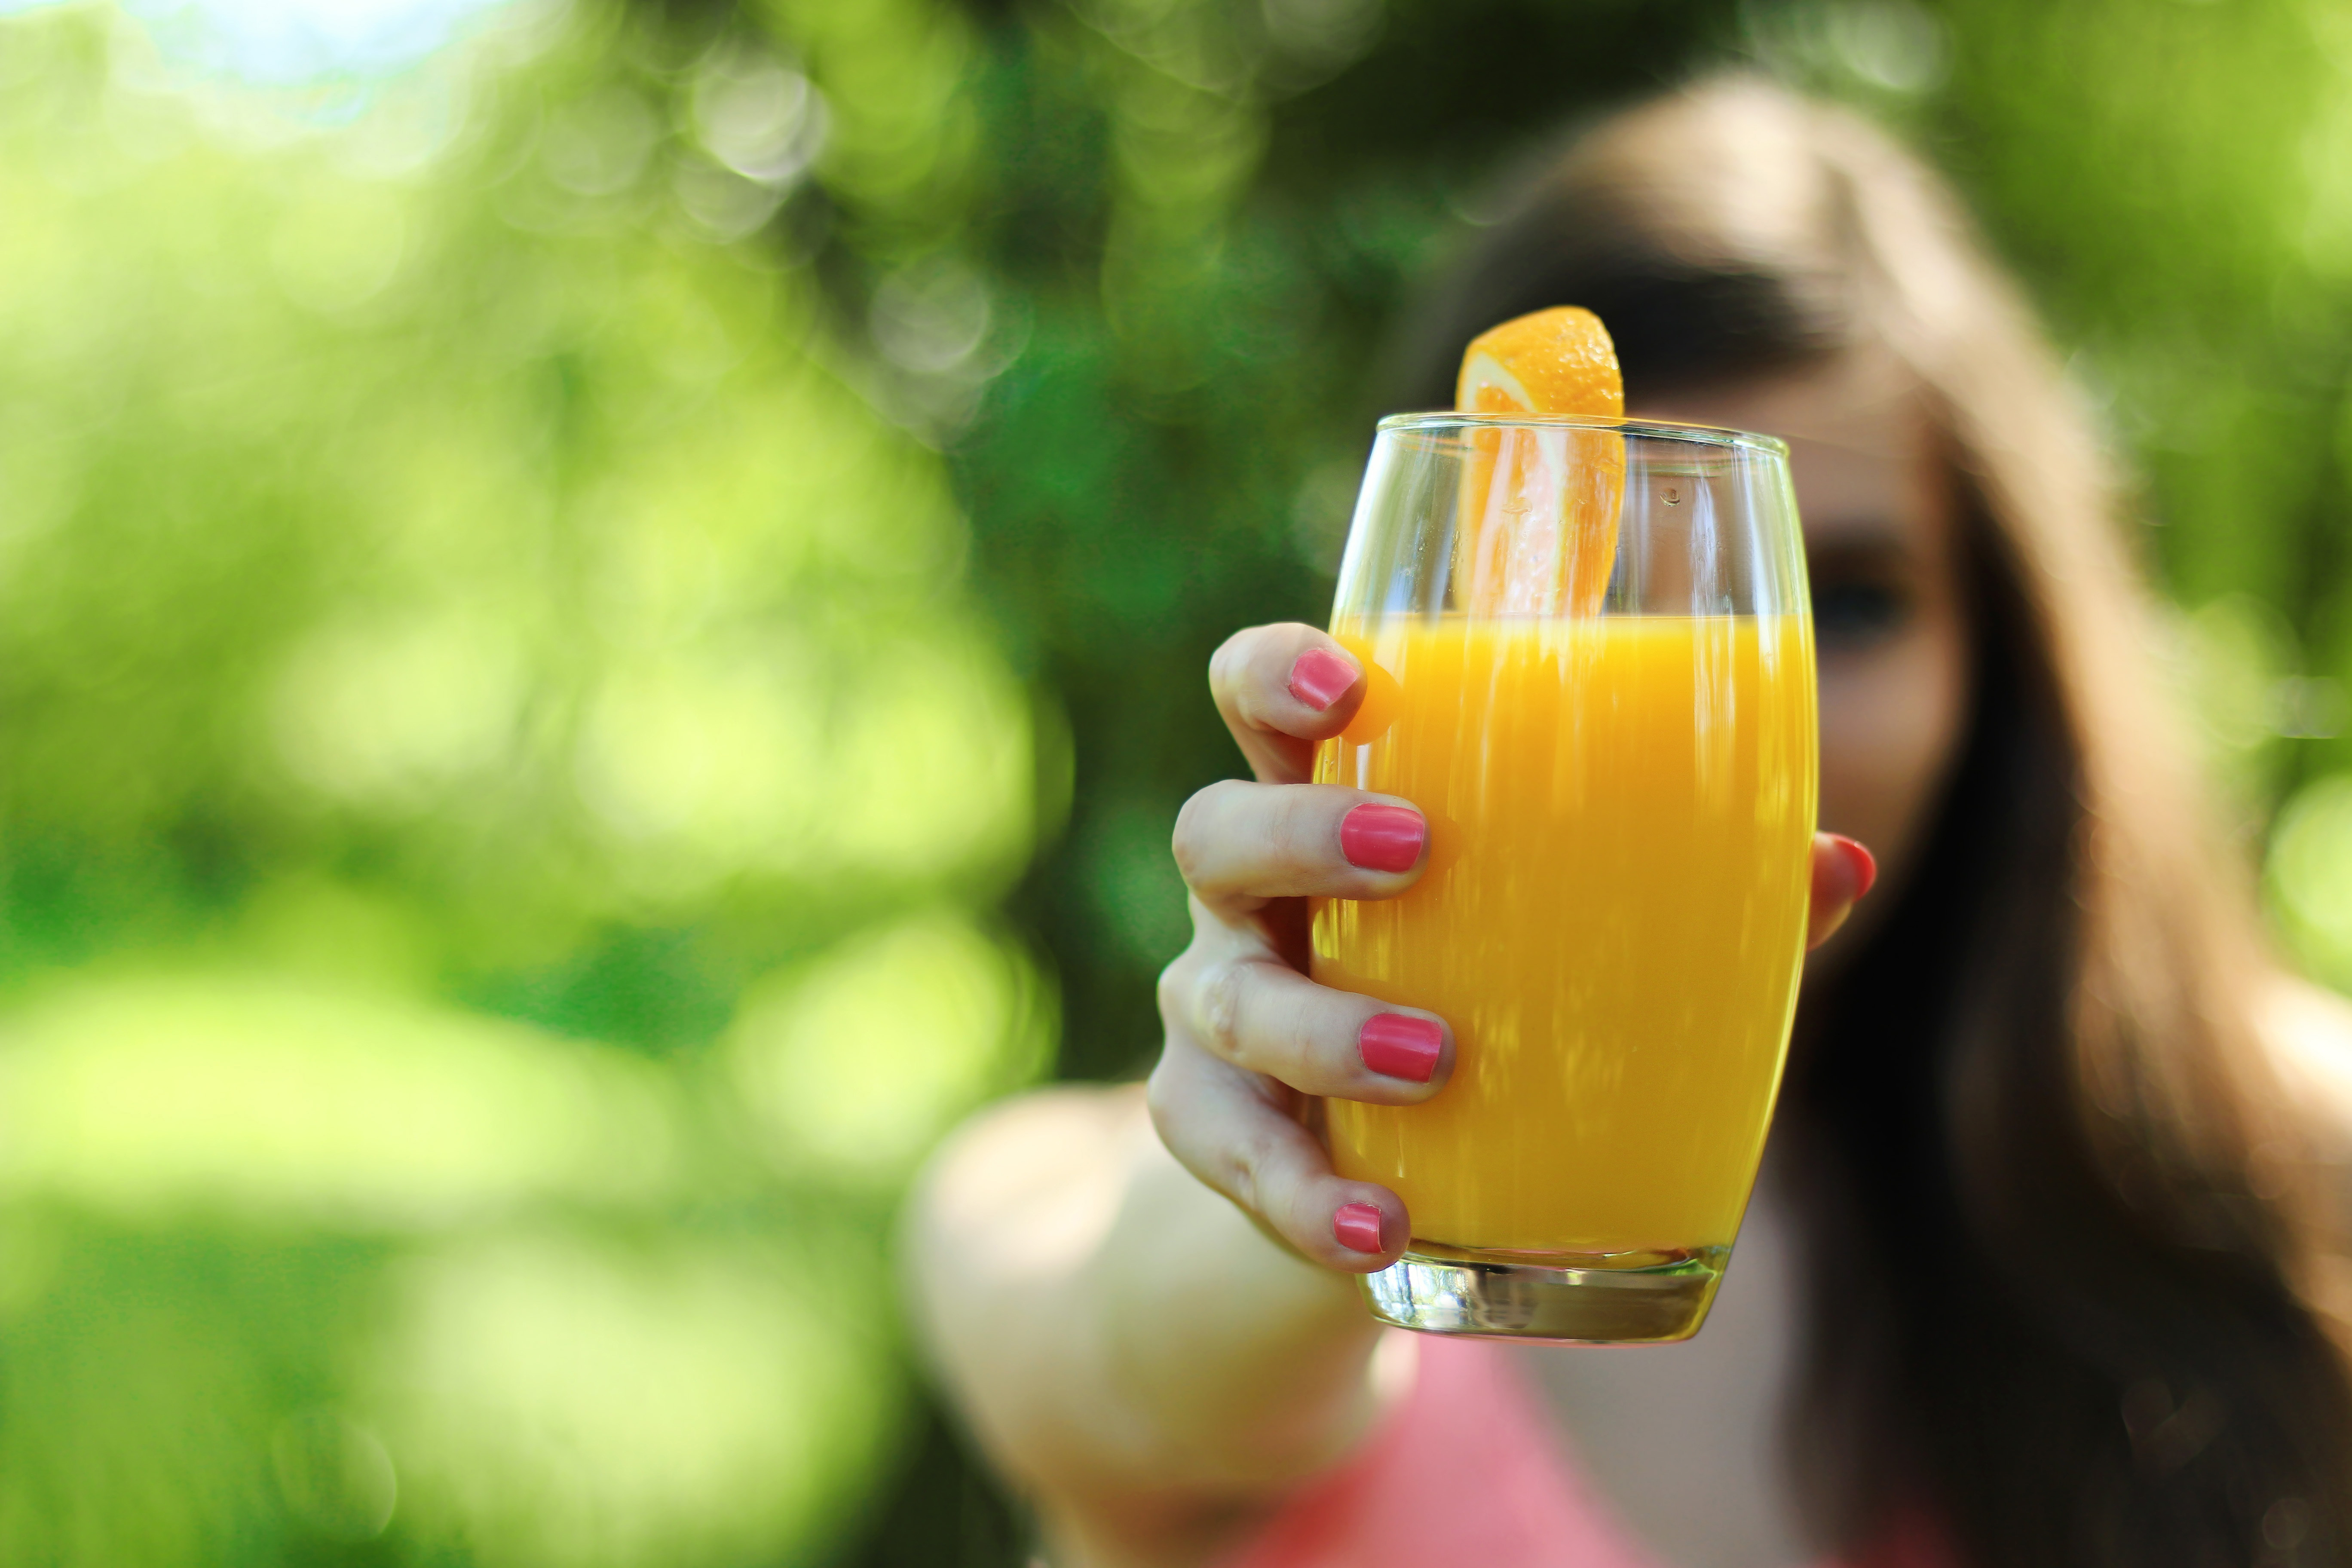 Orange juice,tasty,glass,juice